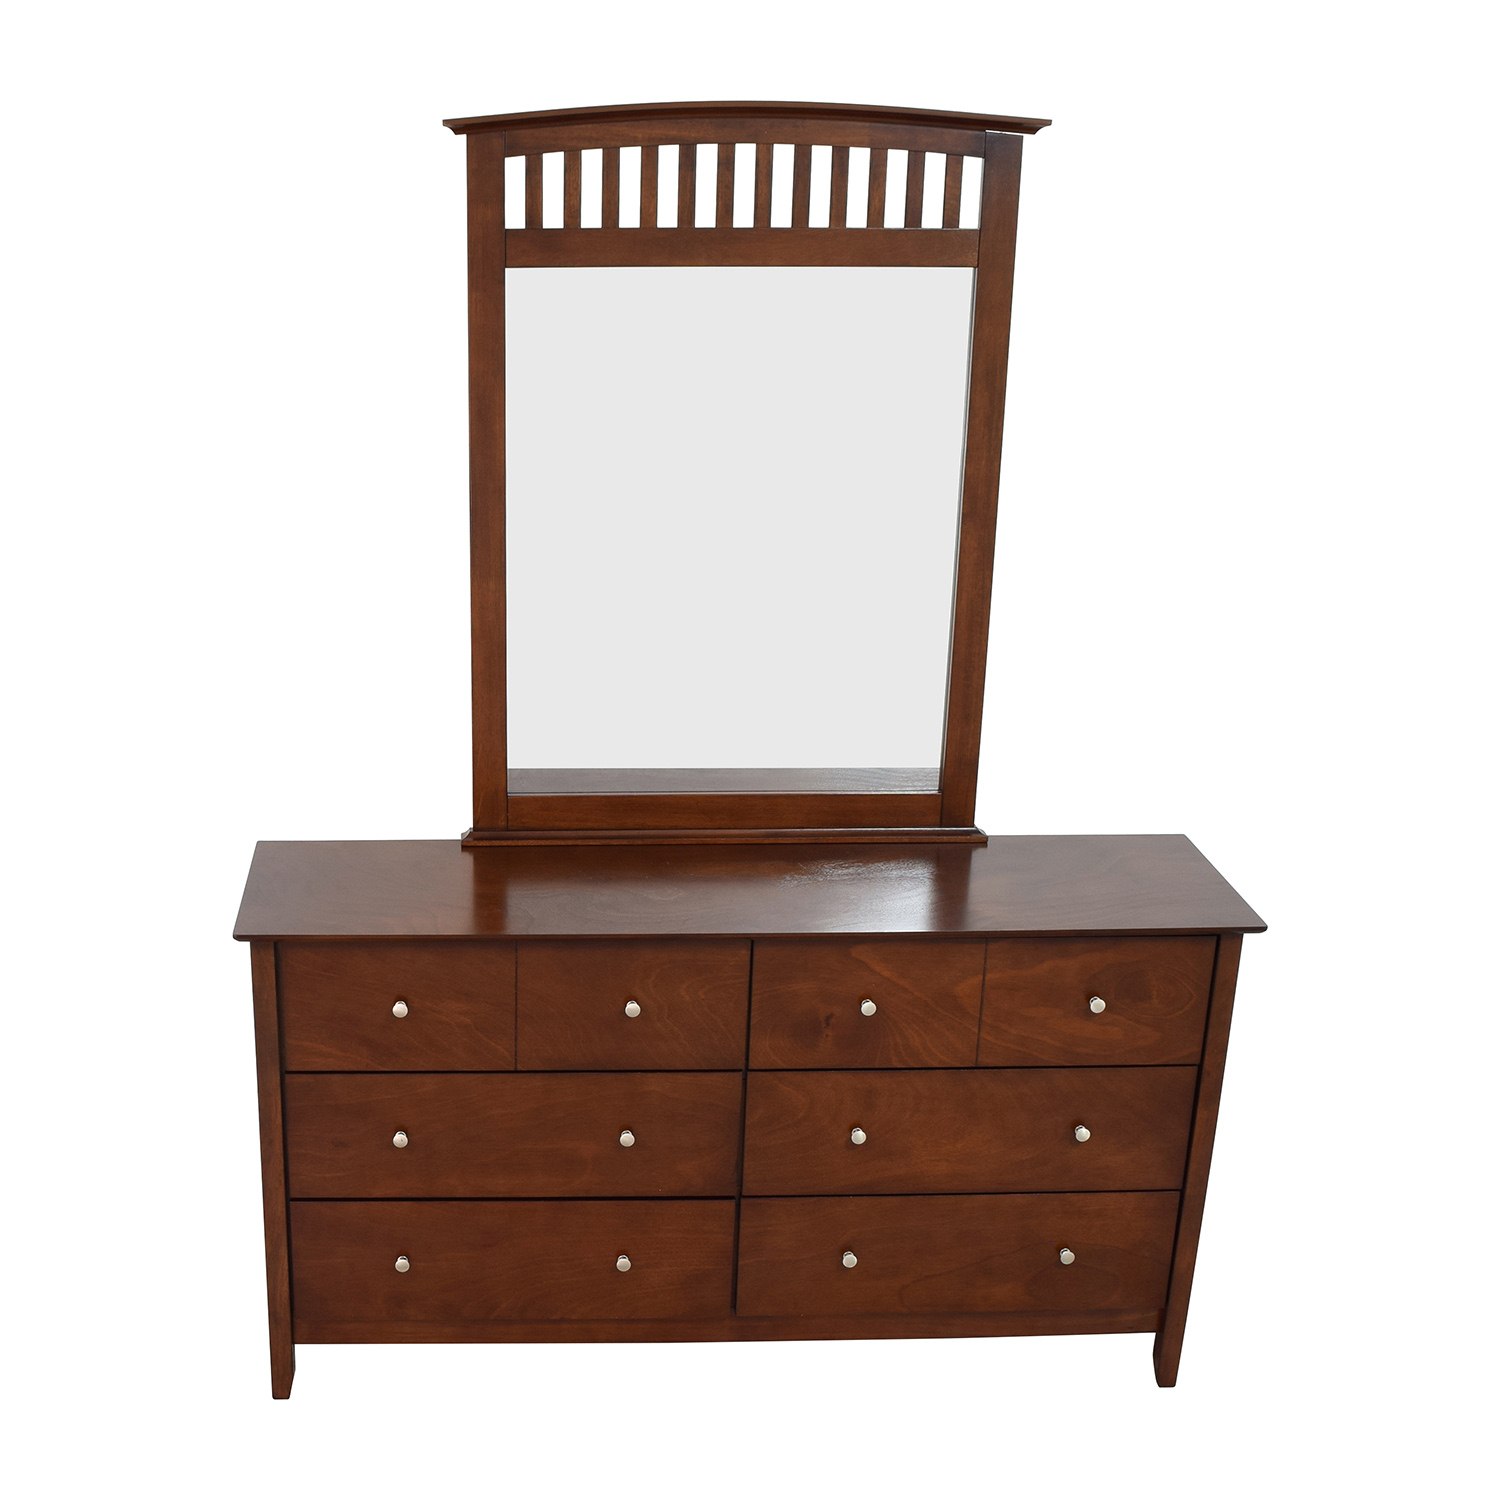 shop Bob's Furniture Bob's Furniture Eight-Drawer Dresser and Mirror online